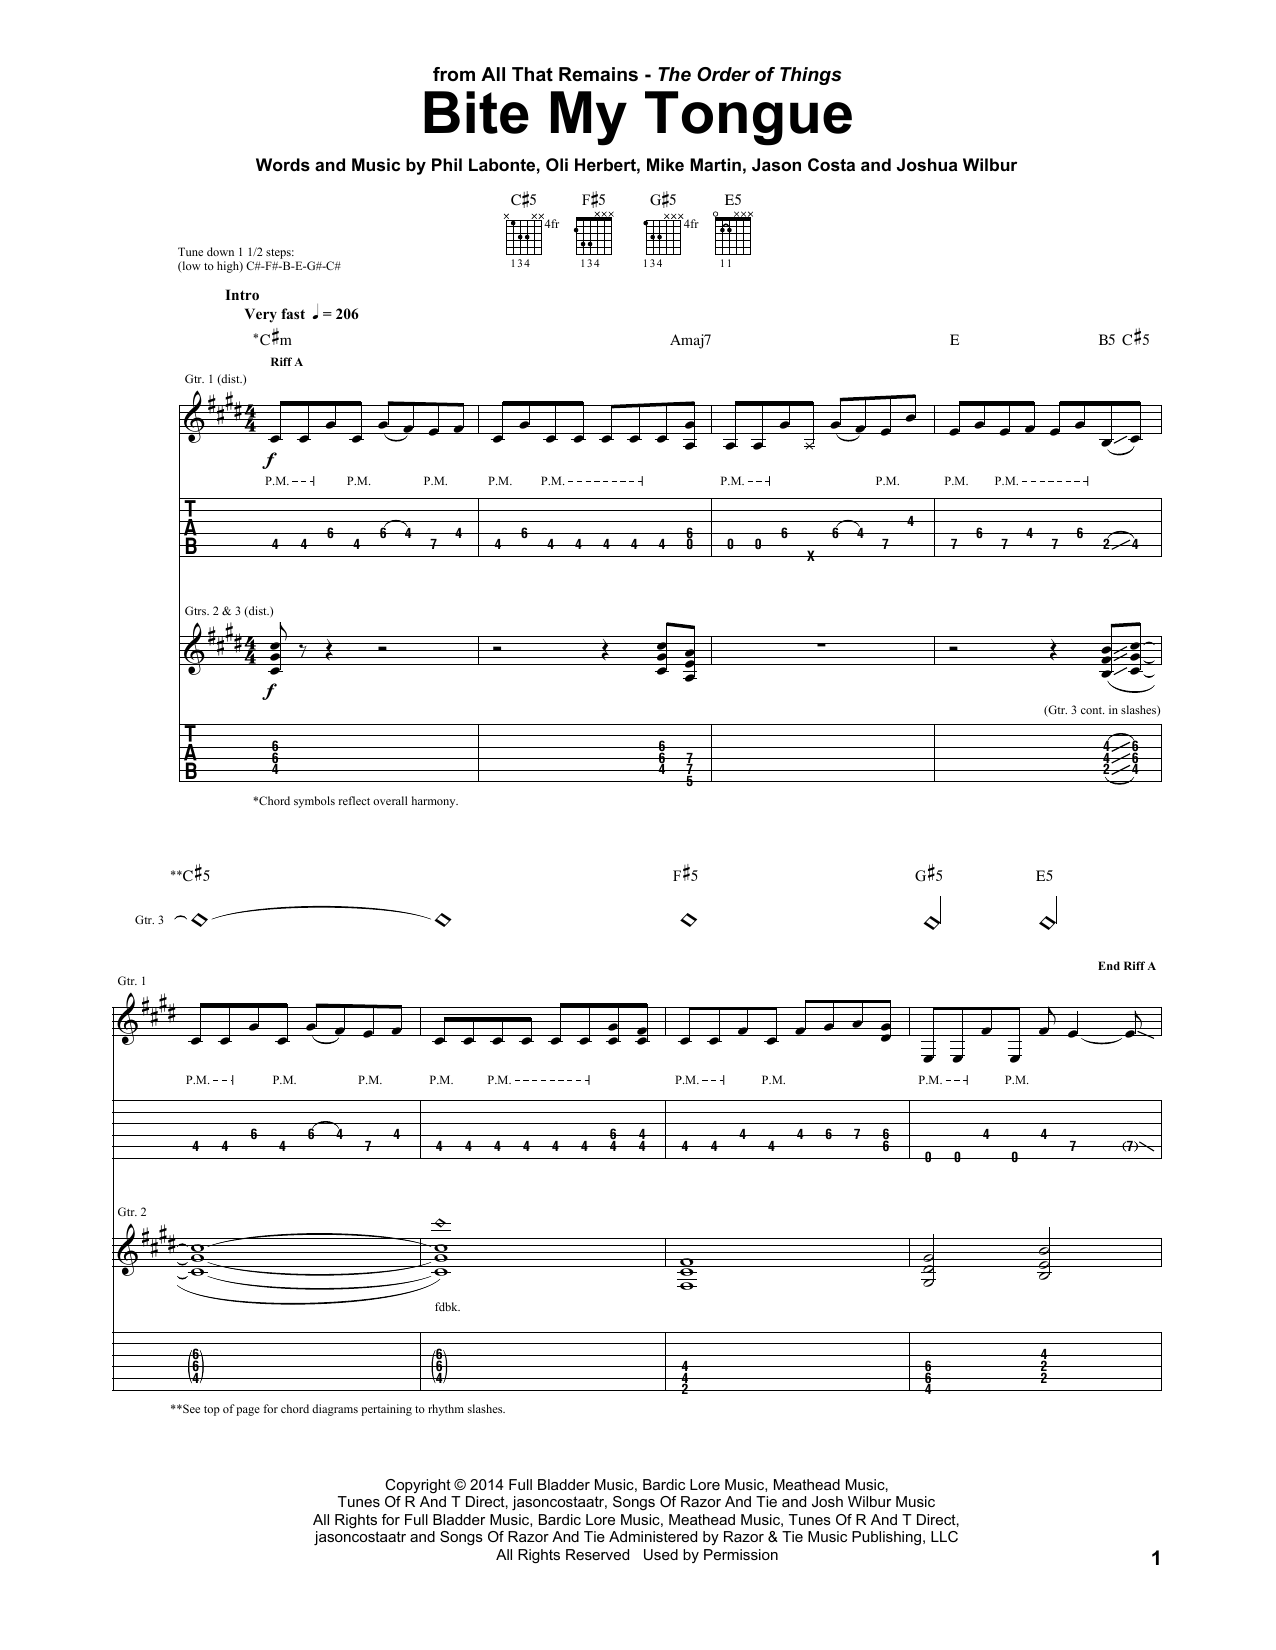 Bite My Tongue Sheet Music